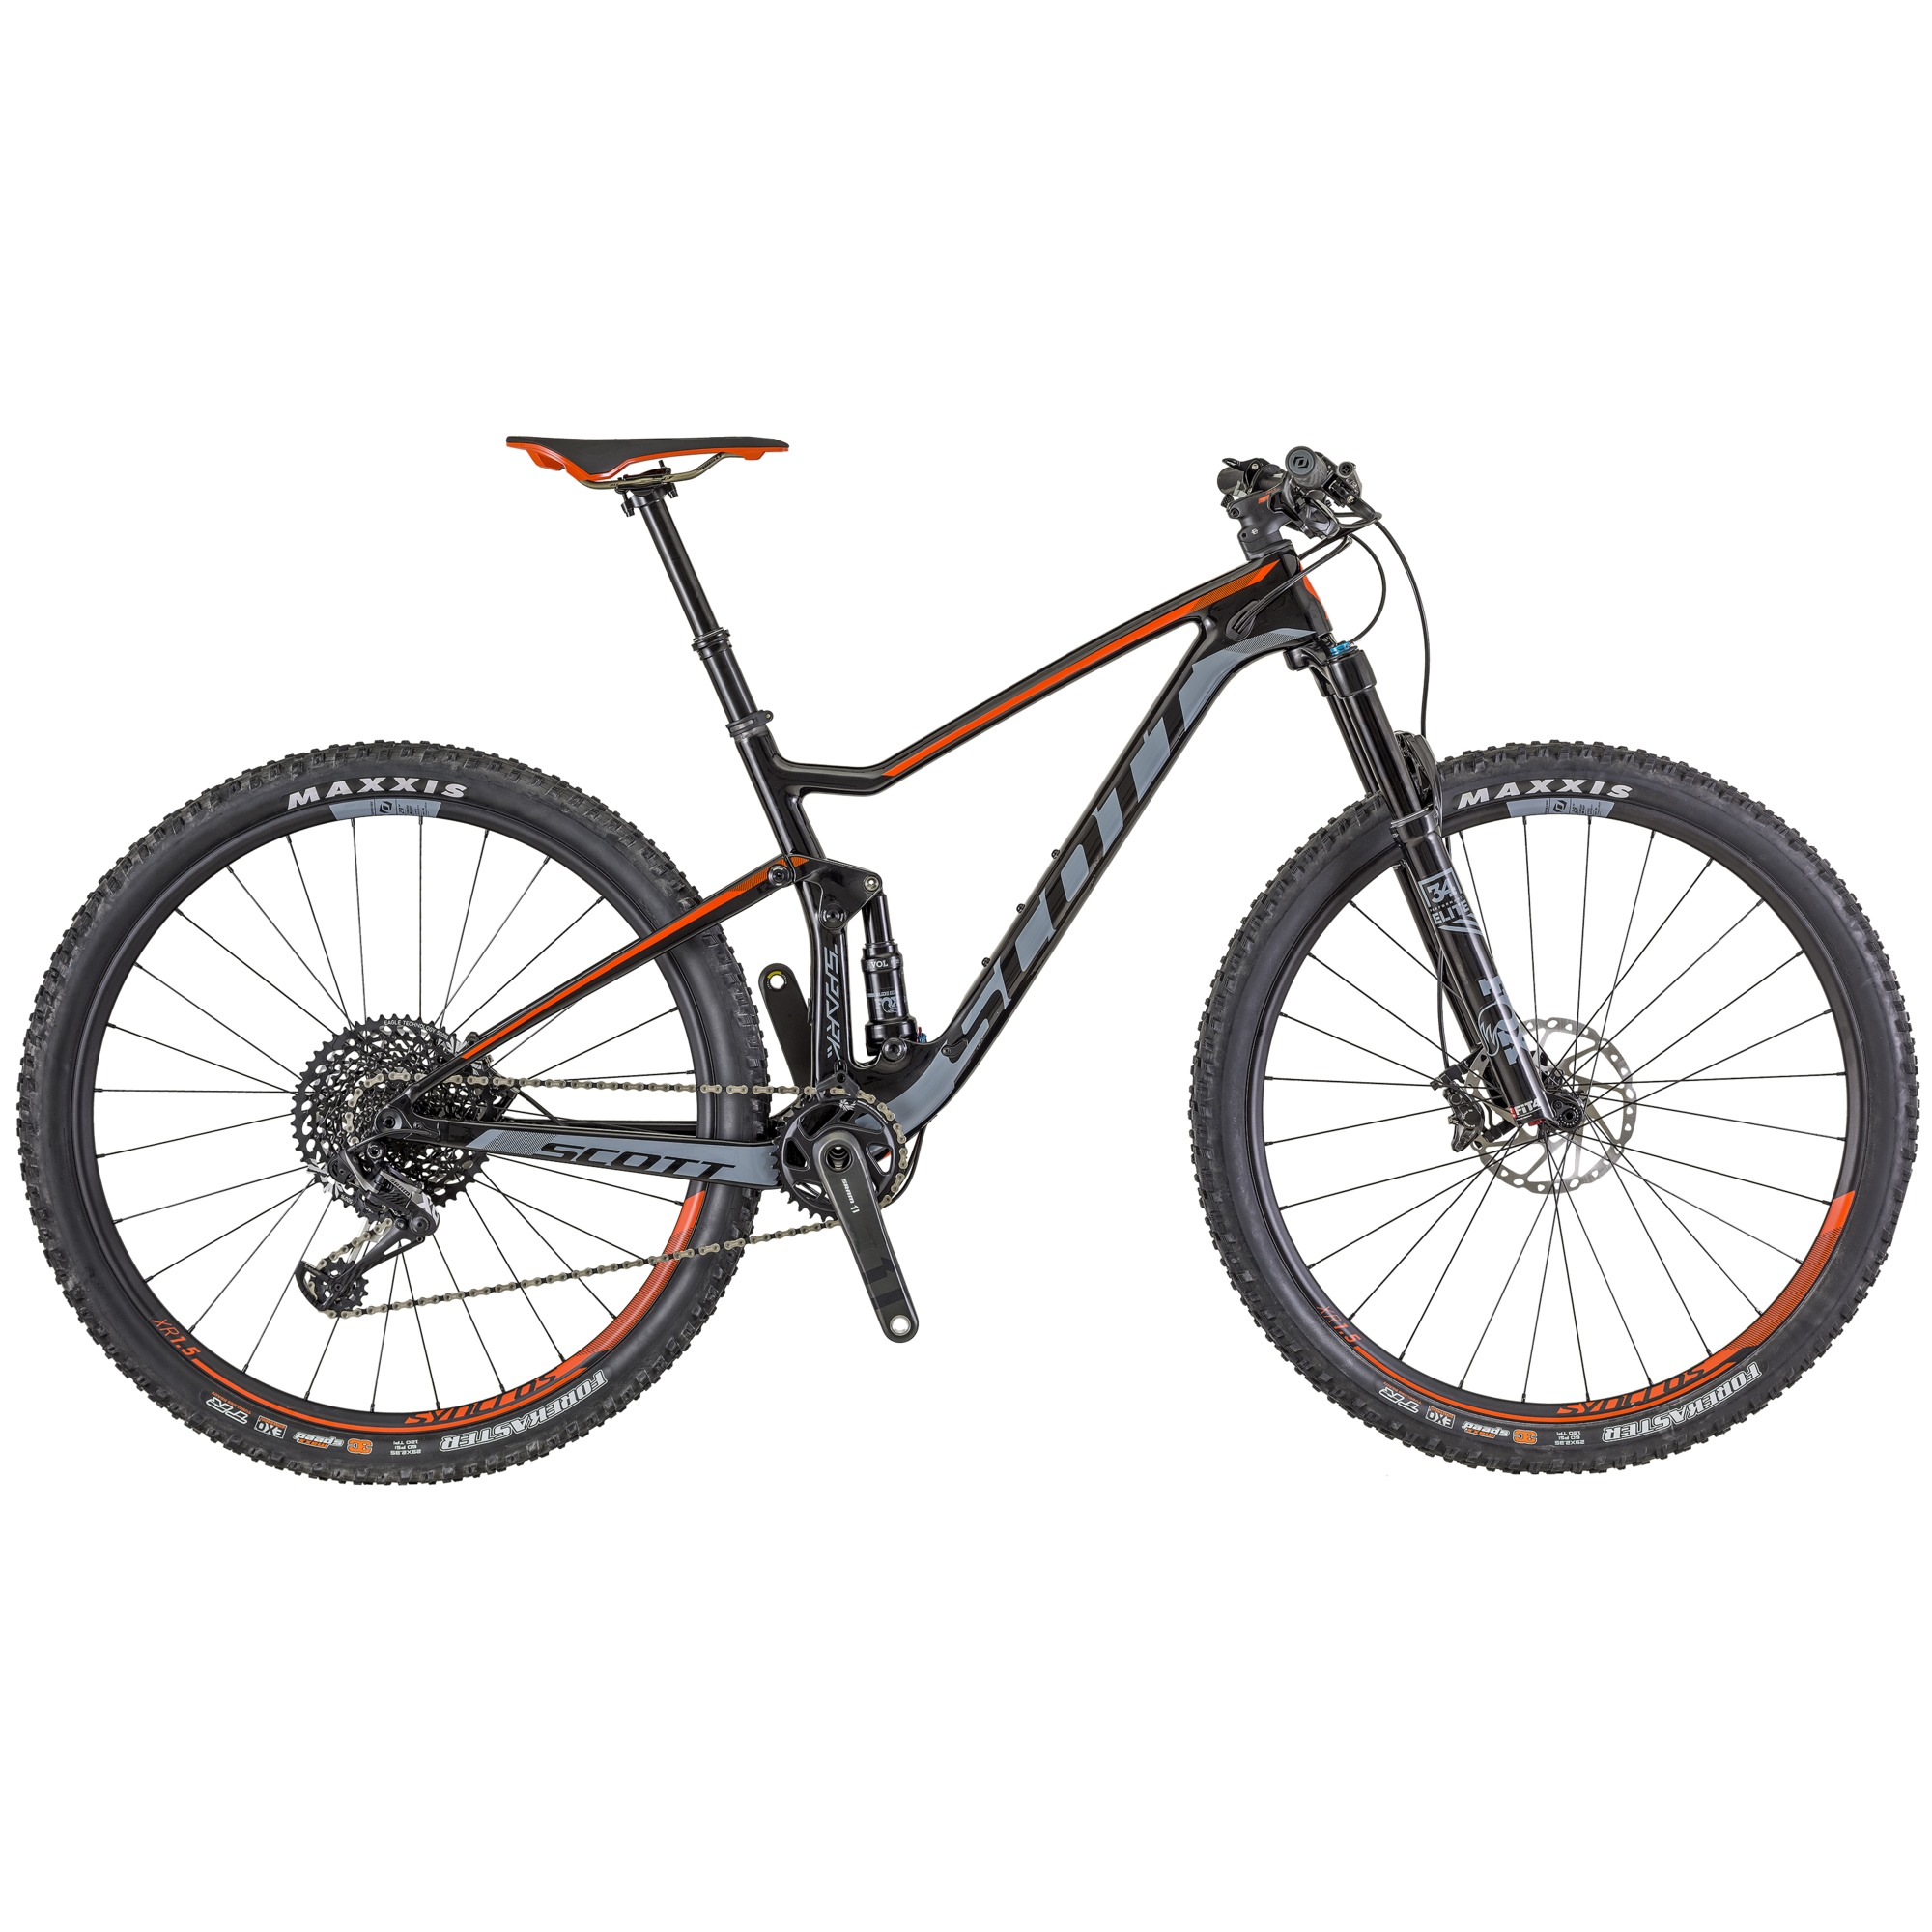 SCOTT Spark 900 Bike XL - Zweirad Homann